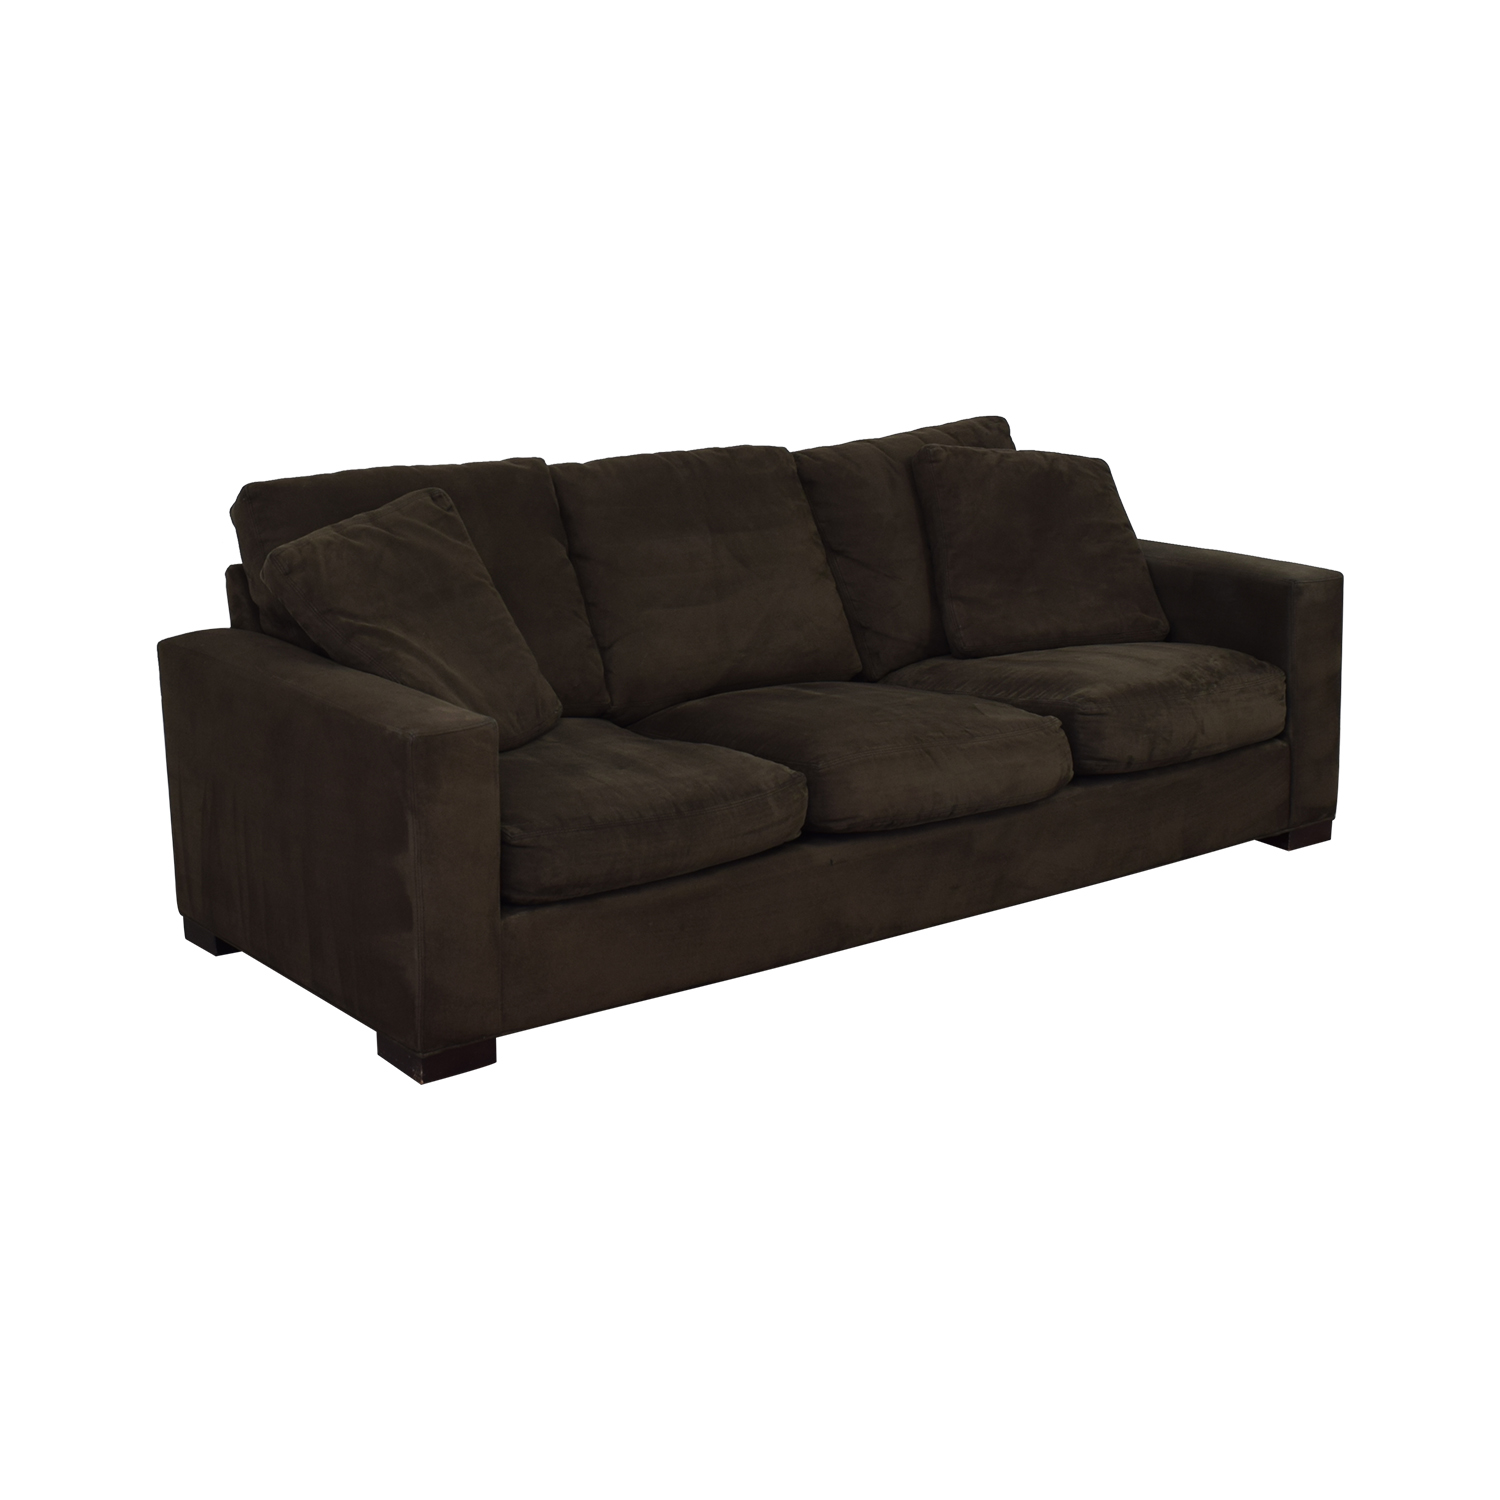 buy Room & Board Dark Grey Micro Suede Sofa Room & Board